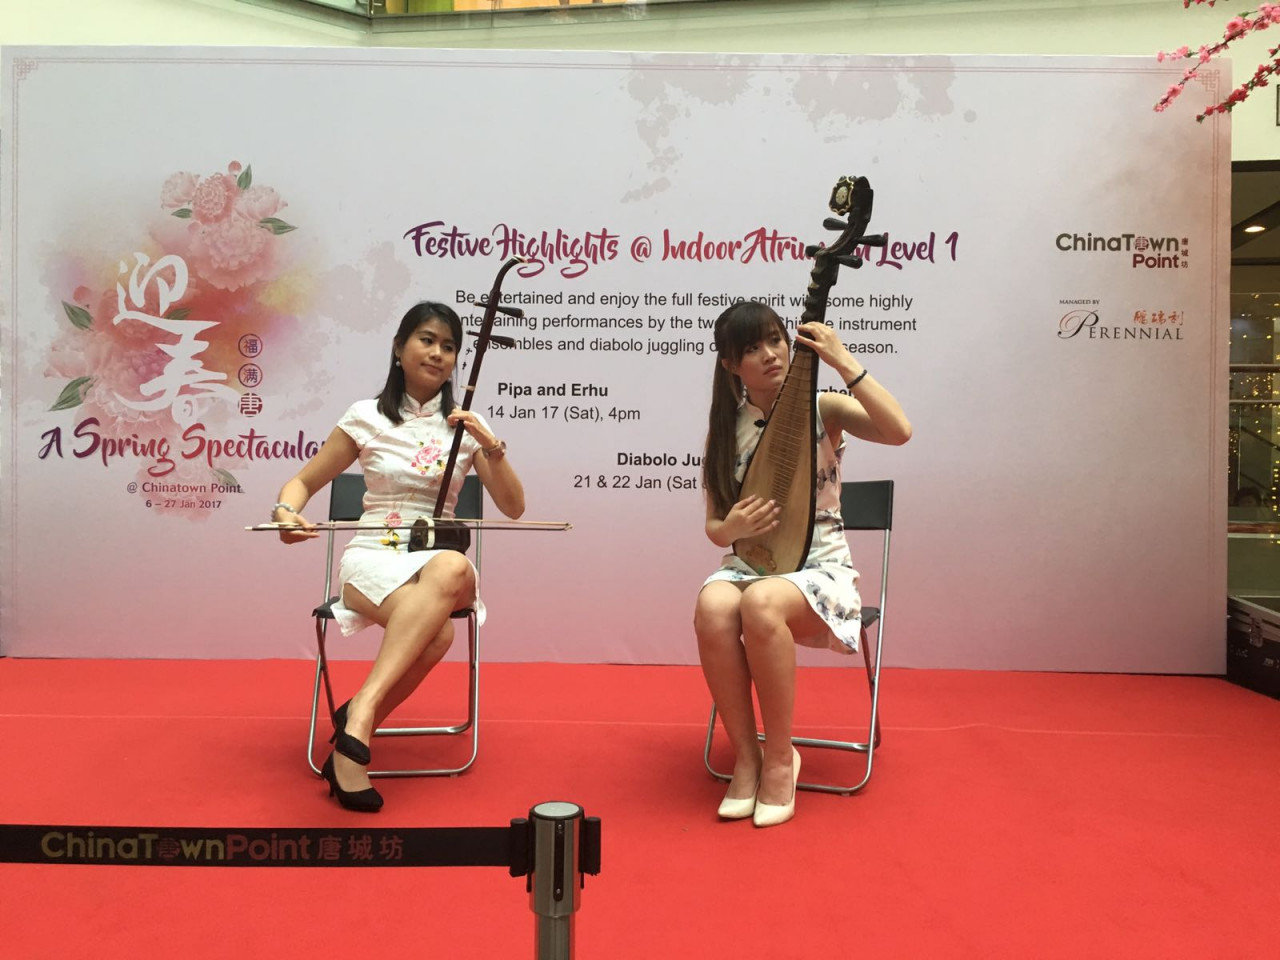 erhu pipa erhu guzheng live performance chinatown point singapore